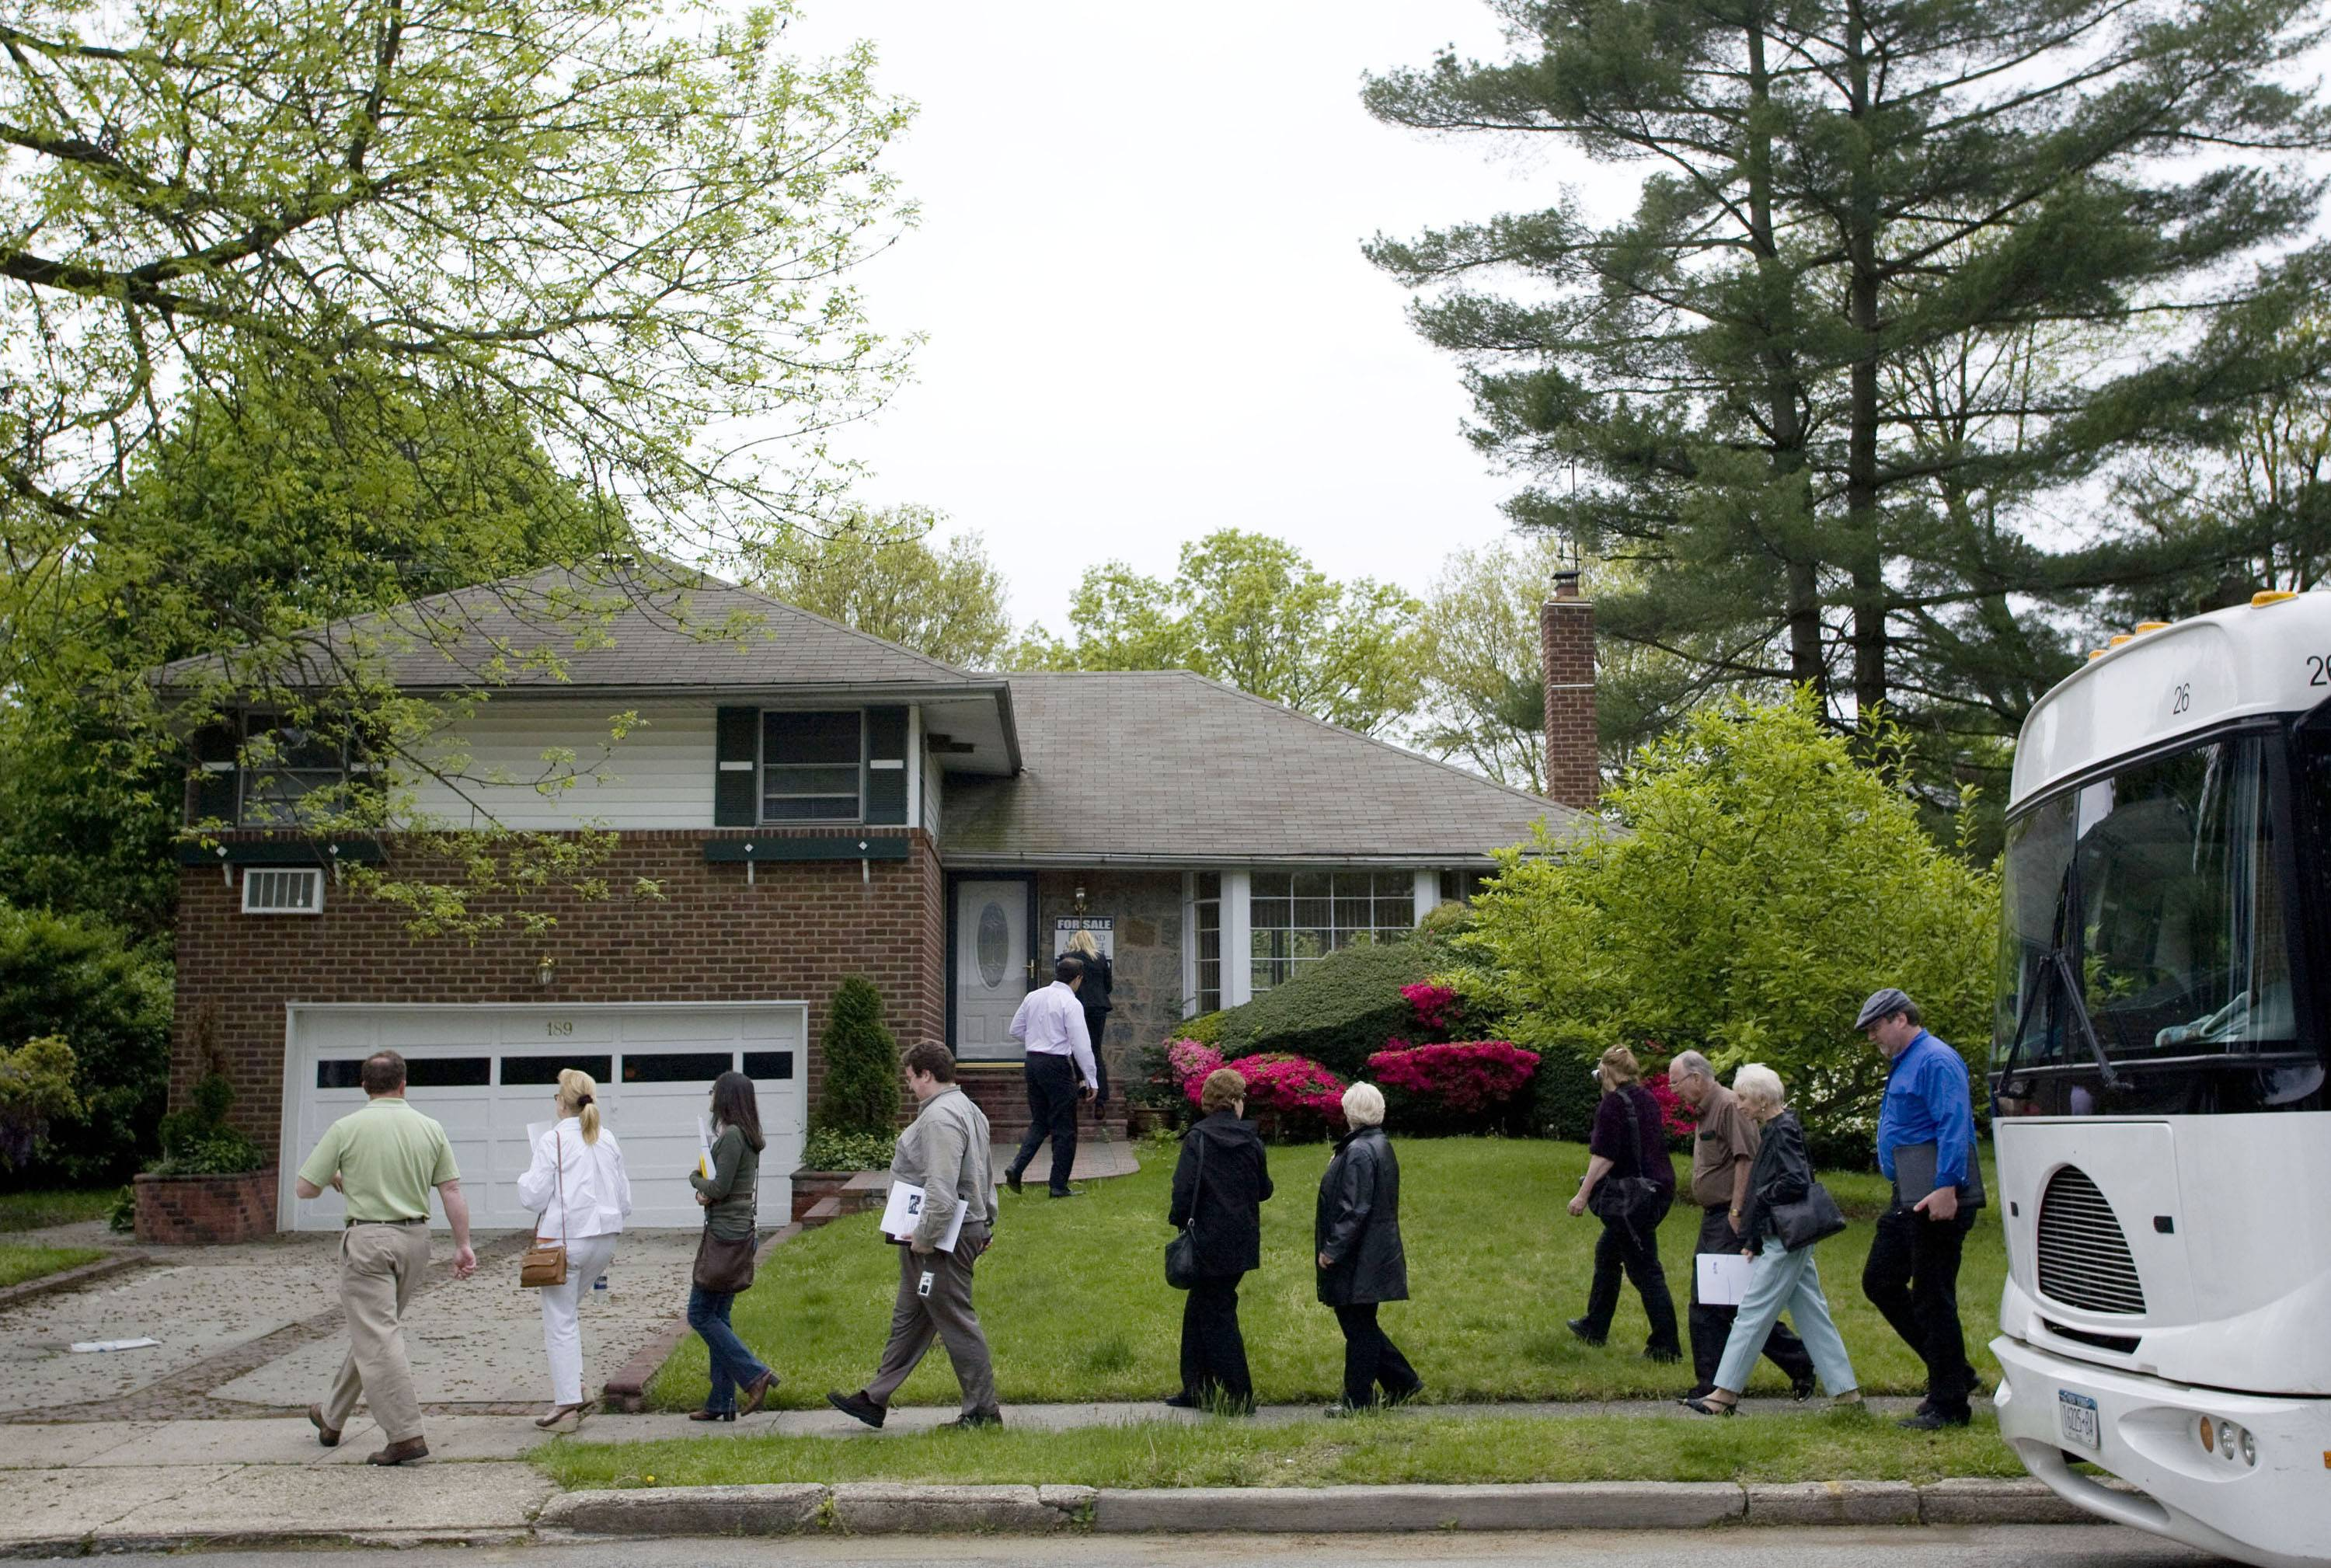 Potential homebuyers visit a foreclosed house in Long Island, N.Y., in May 2008.